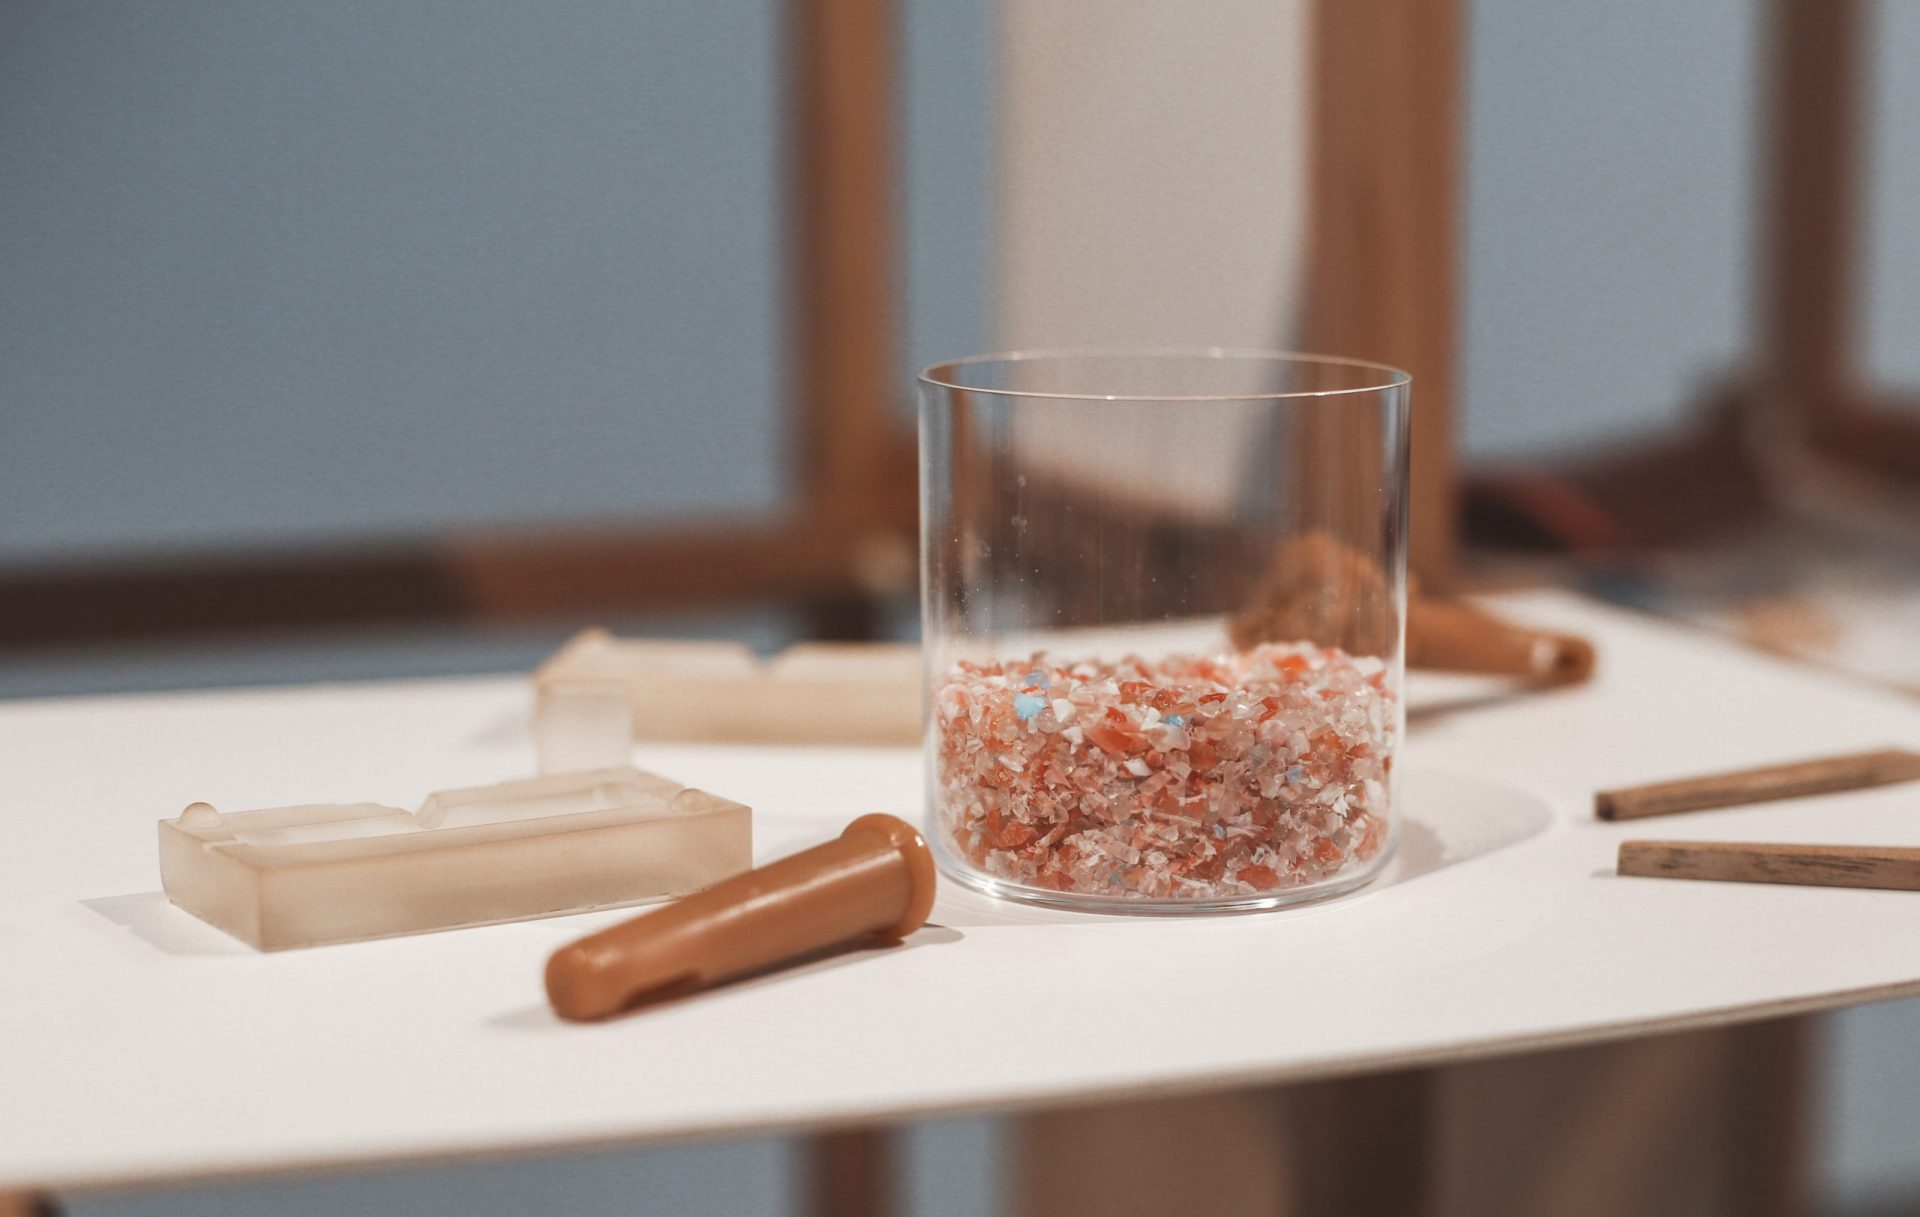 Using plastic in architecture helps keep it out of the environment. (Image: Lara Pinho)